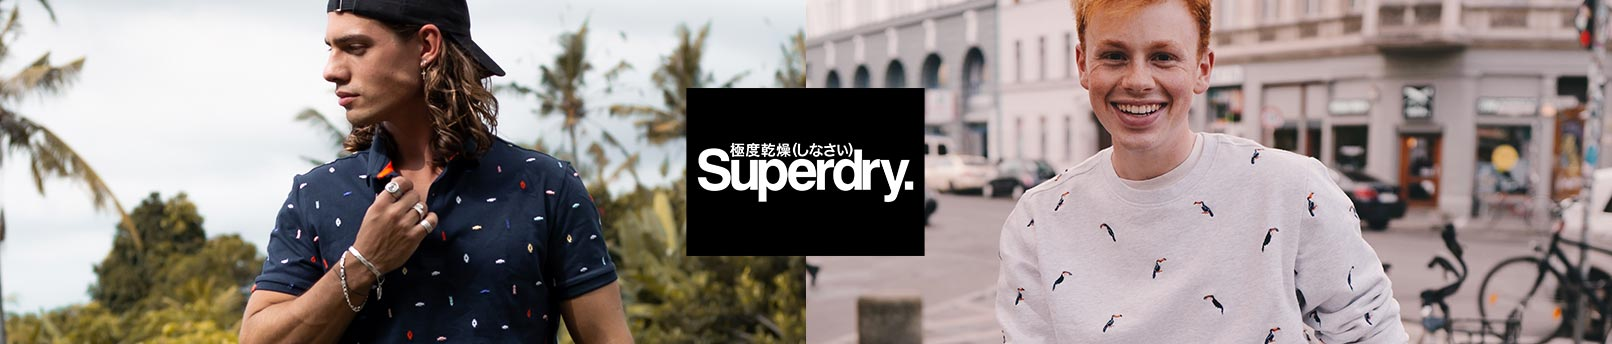 Superdry shoppen